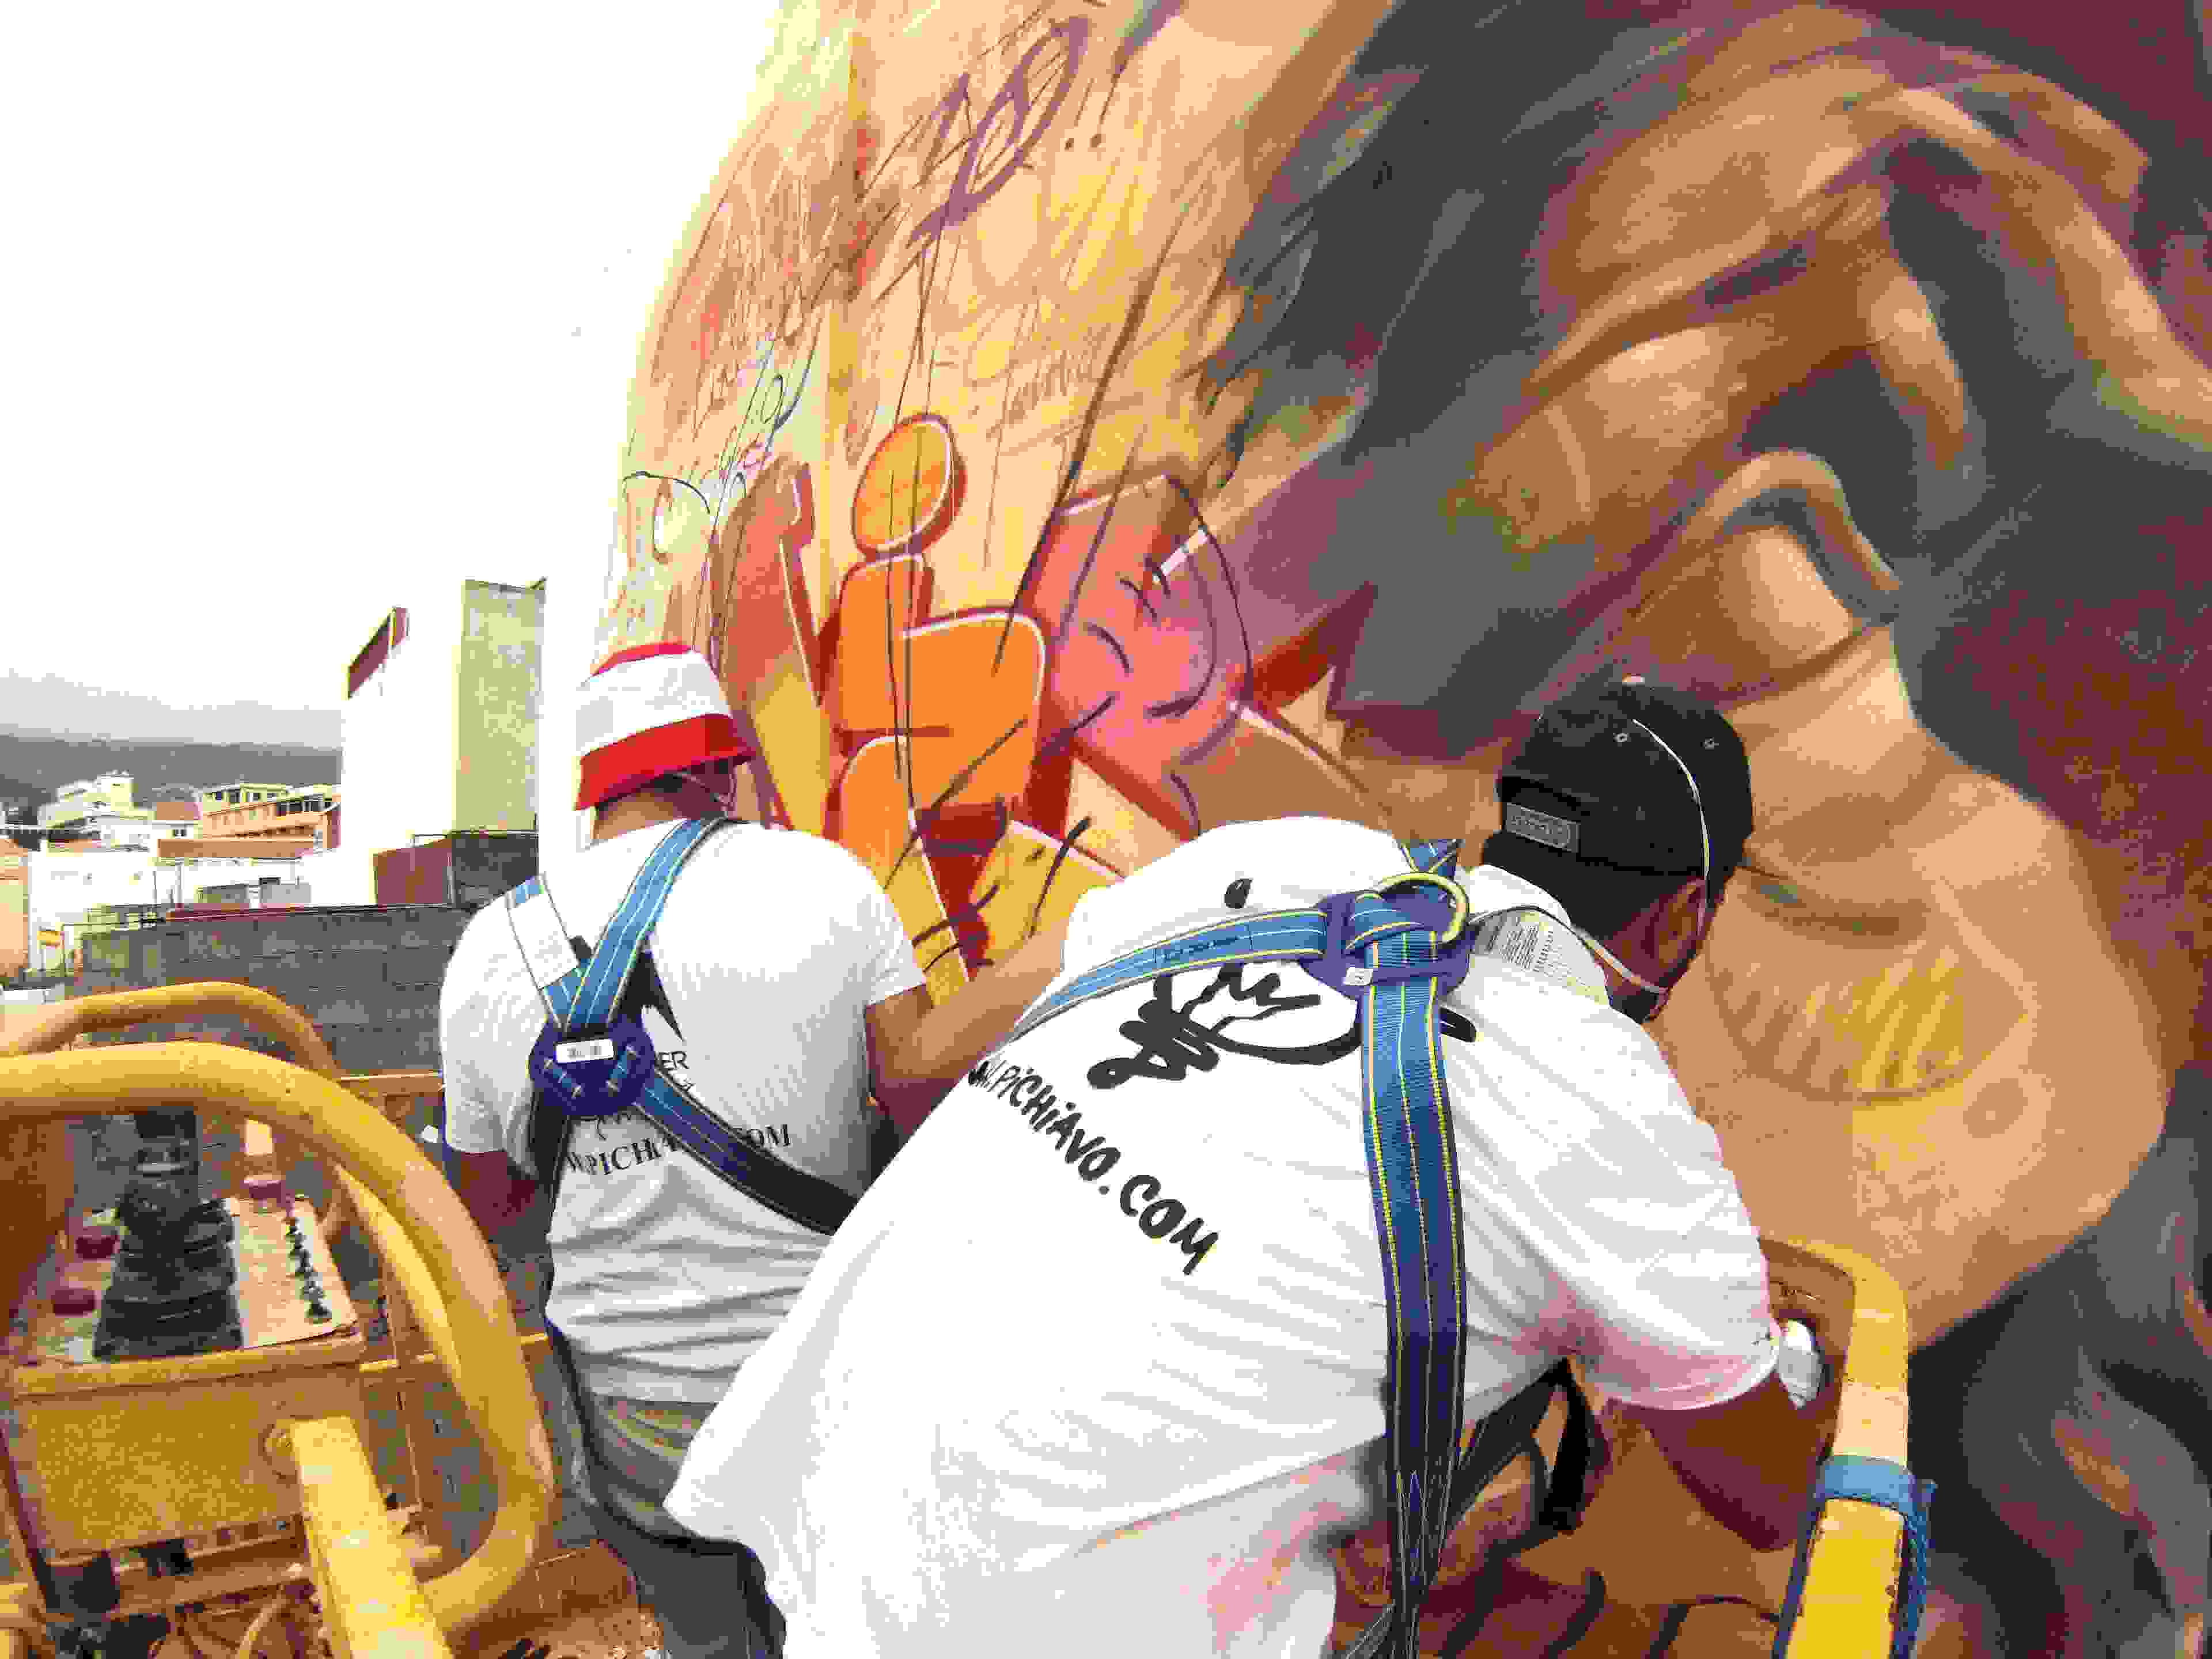 International Street Art Festival